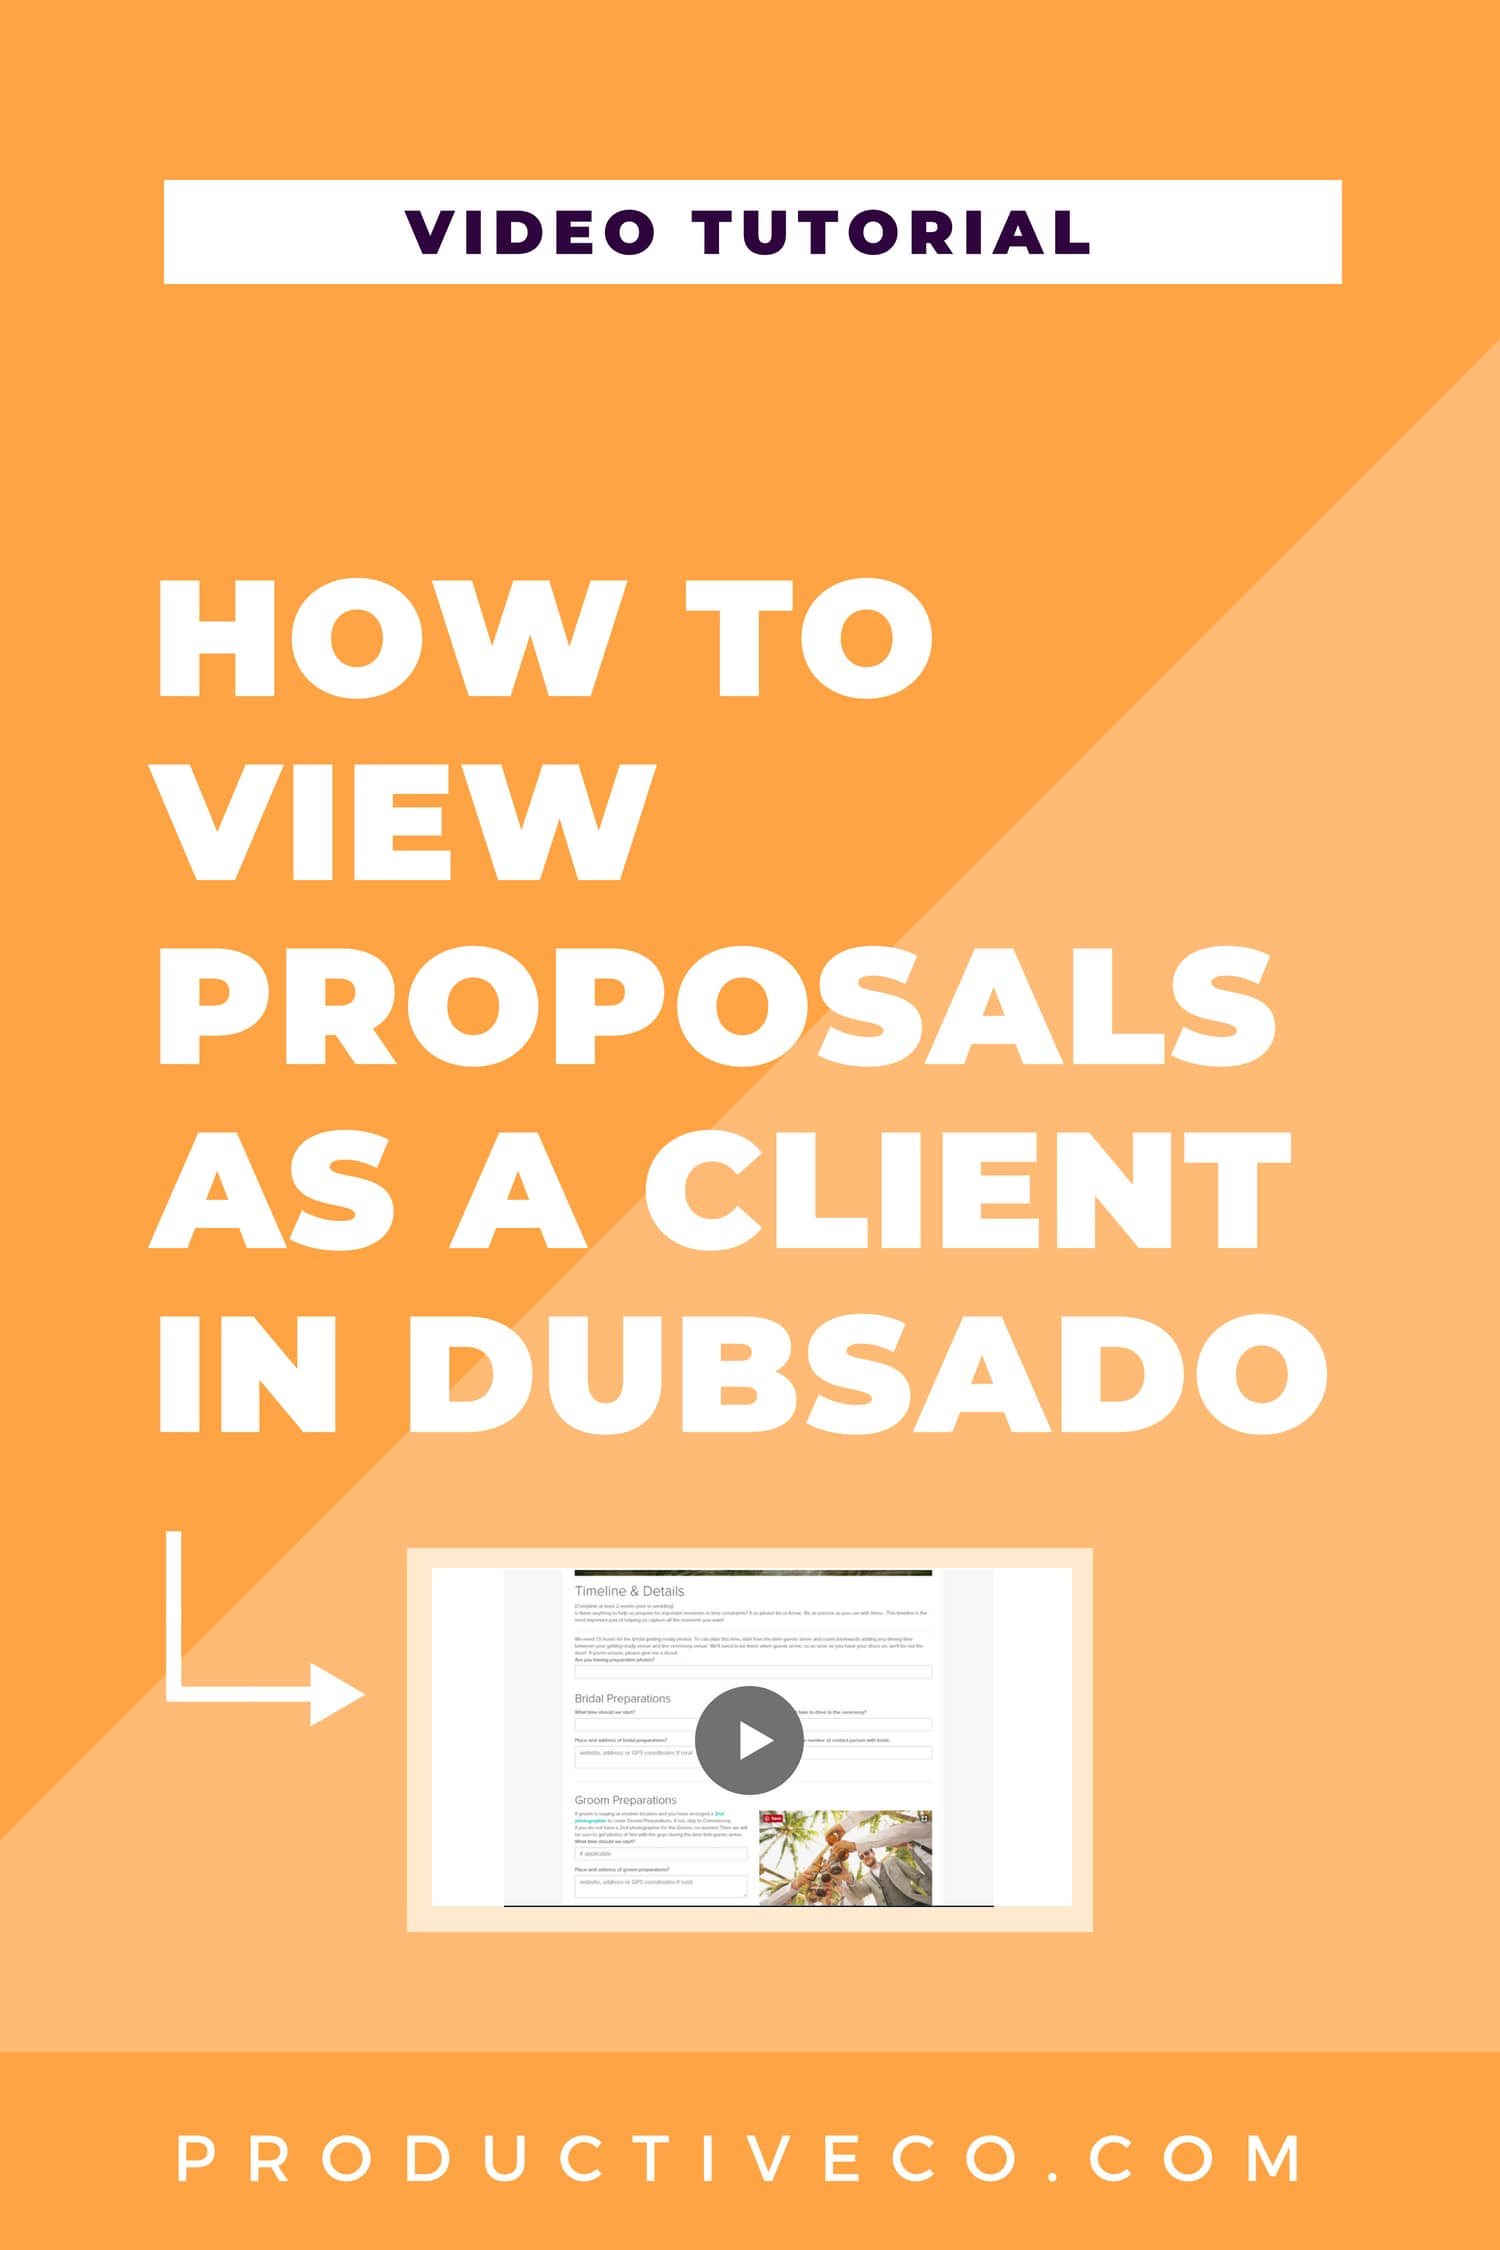 How to view proposals as a client in Dubsado. These instructions will work for all types of forms in Dubsado: contracts, sub-agreements, questionnaires, proposals, and lead captures.